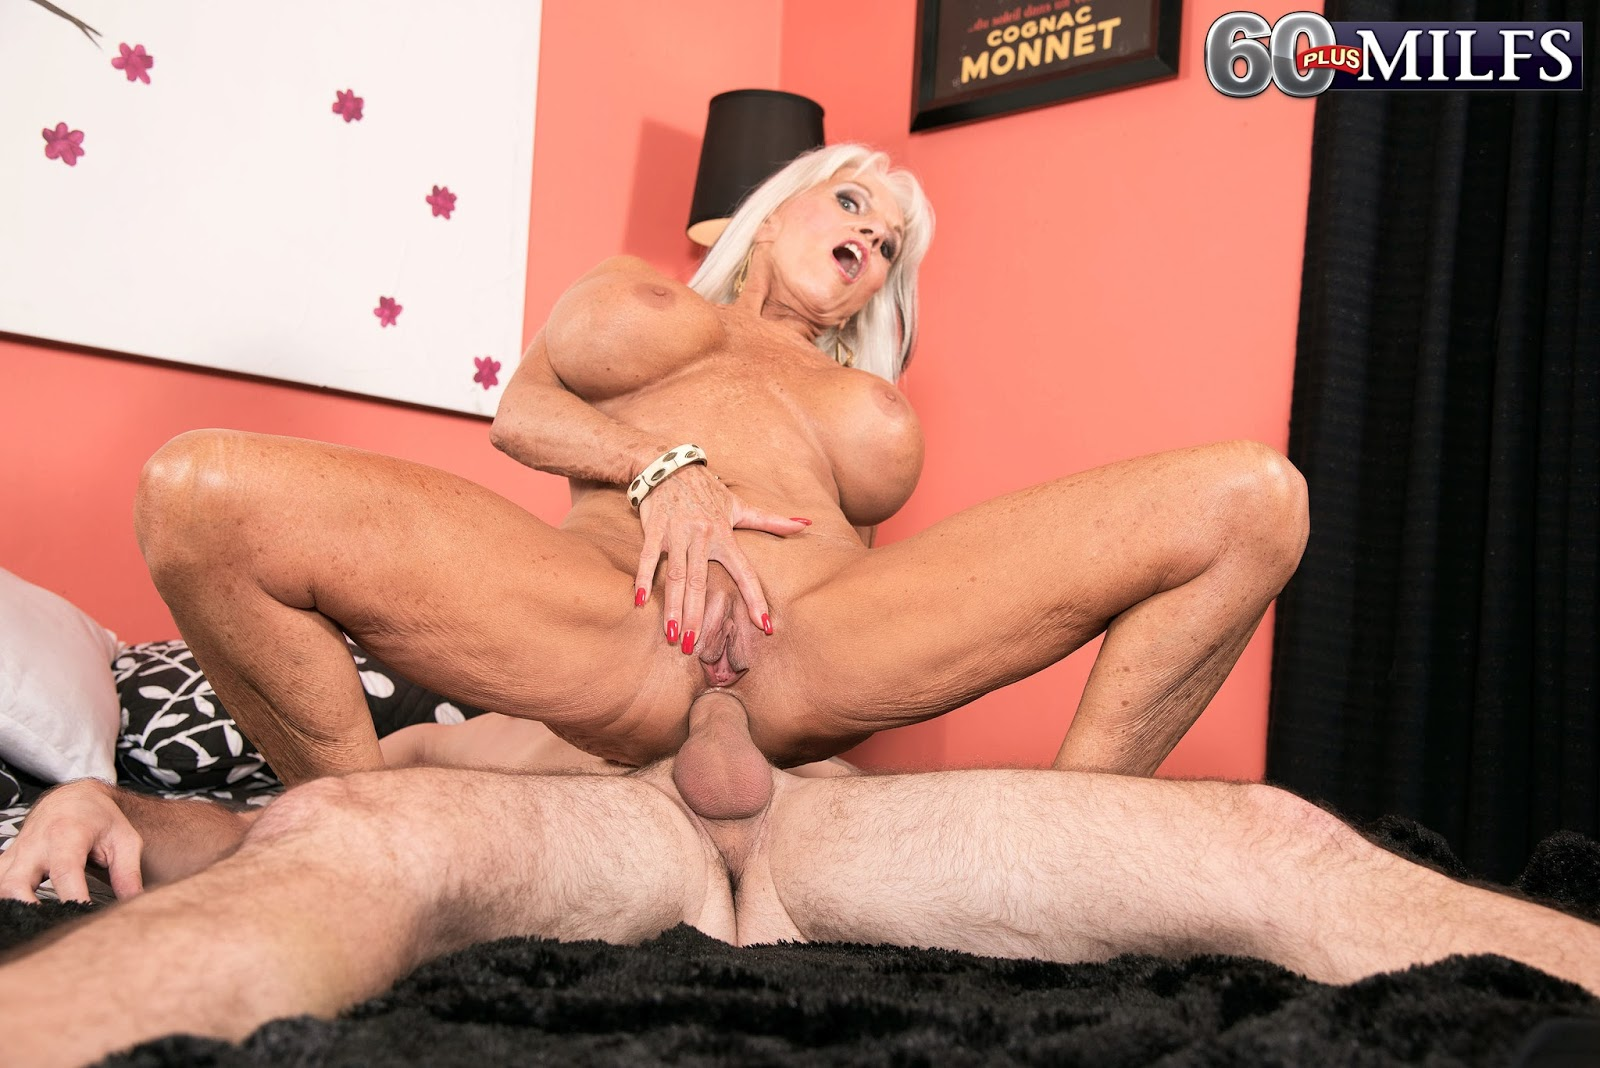 Pricilla milan group anal